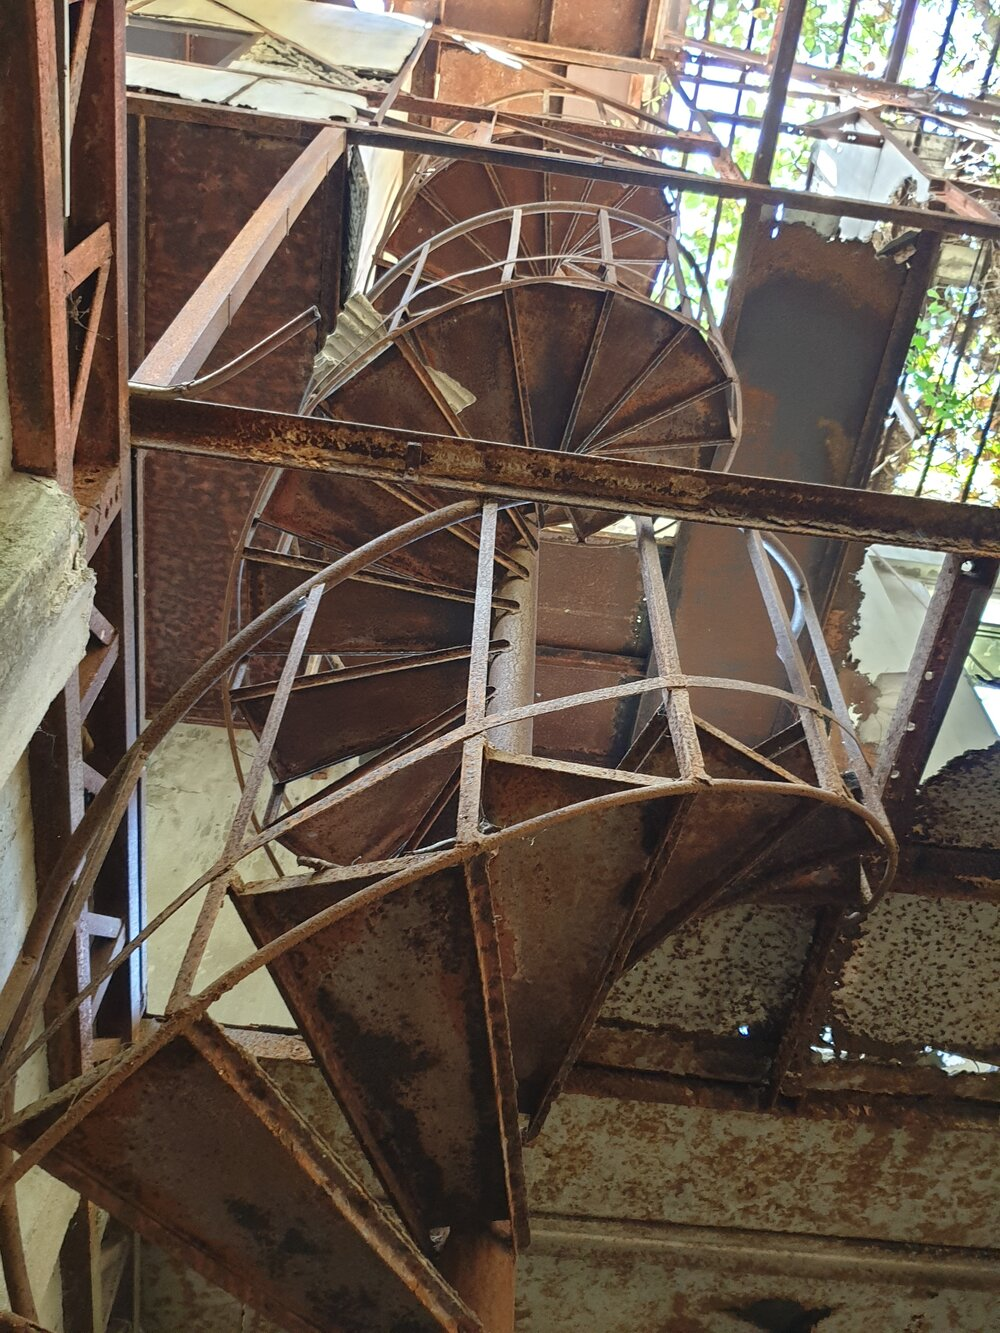 A badly rusted staircase that I did not climb